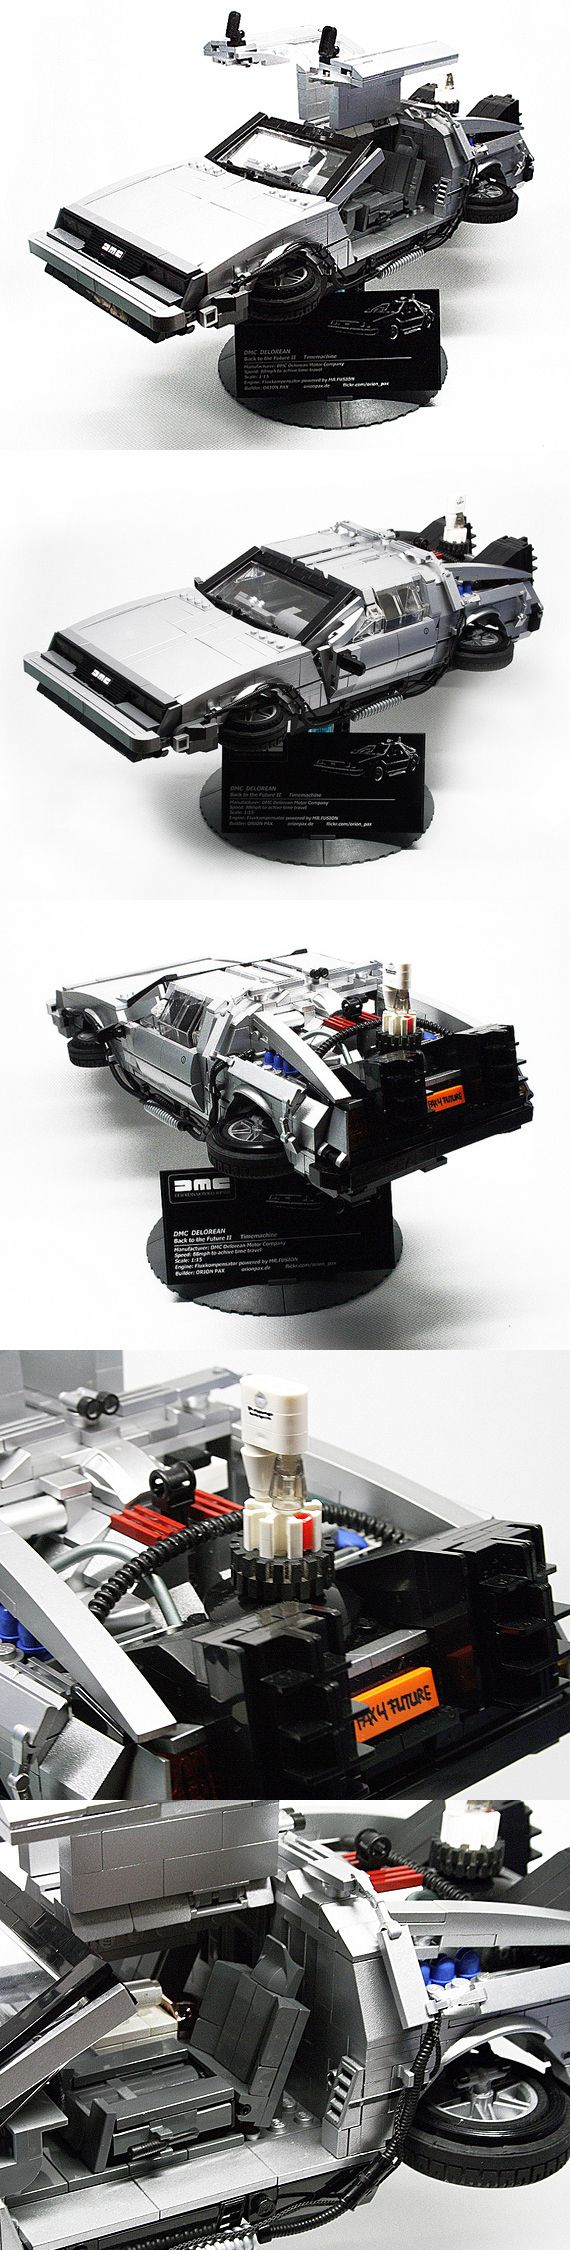 Back To The Future II DMC DeLorean! LEGO Replica by Orion Pax (Lego Artist)...hope it becomes available as a kit soon!